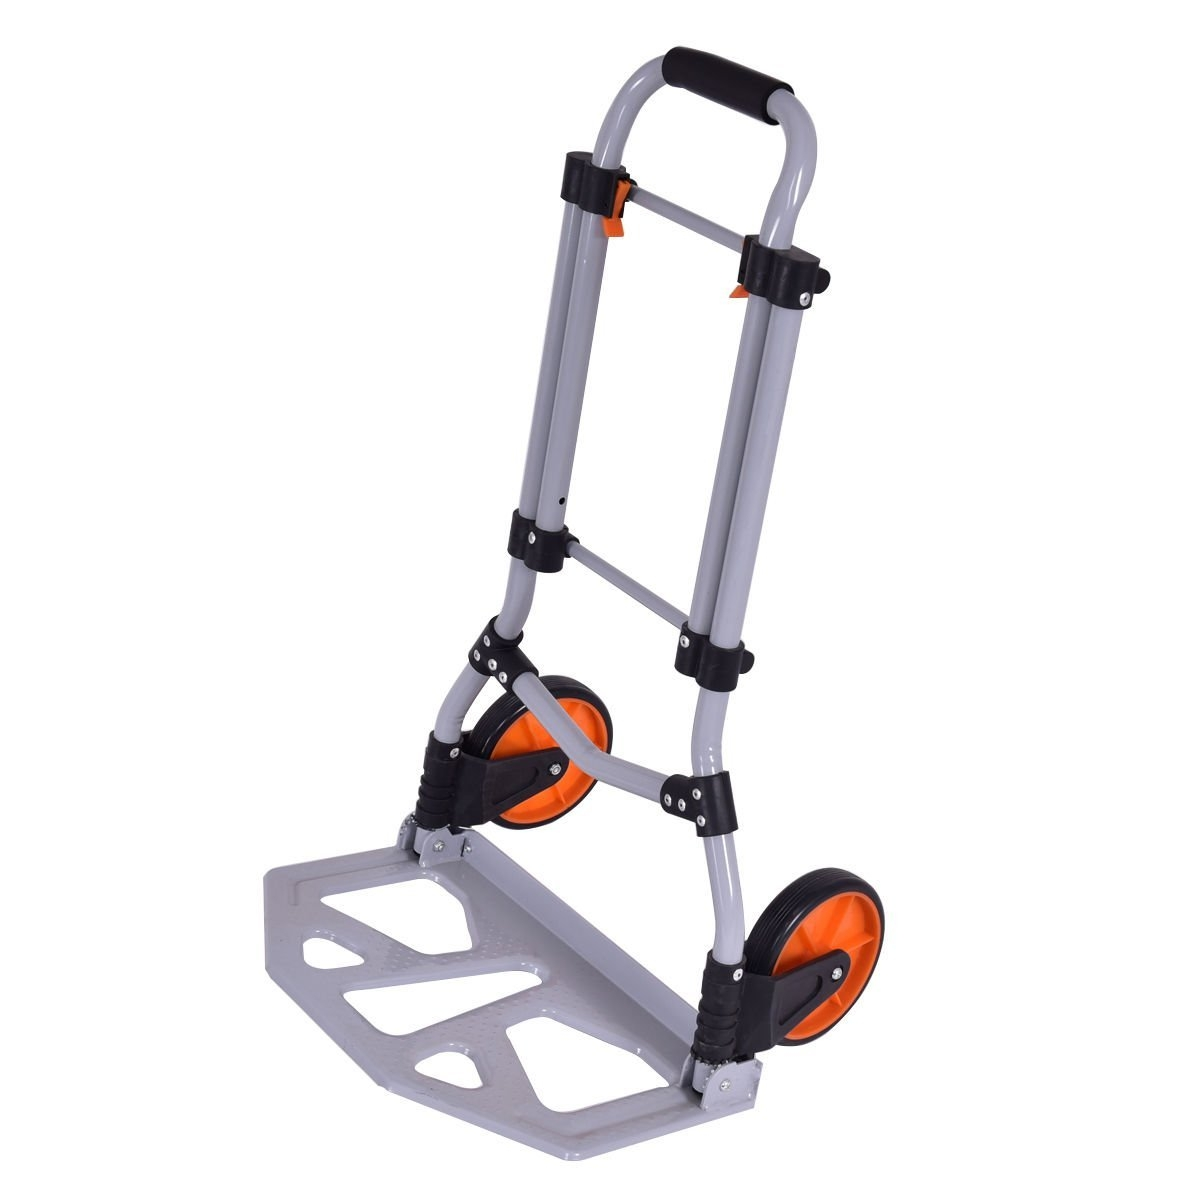 New MTN-G Folding Dolly Hand Truck Cart Collapsible Push ...